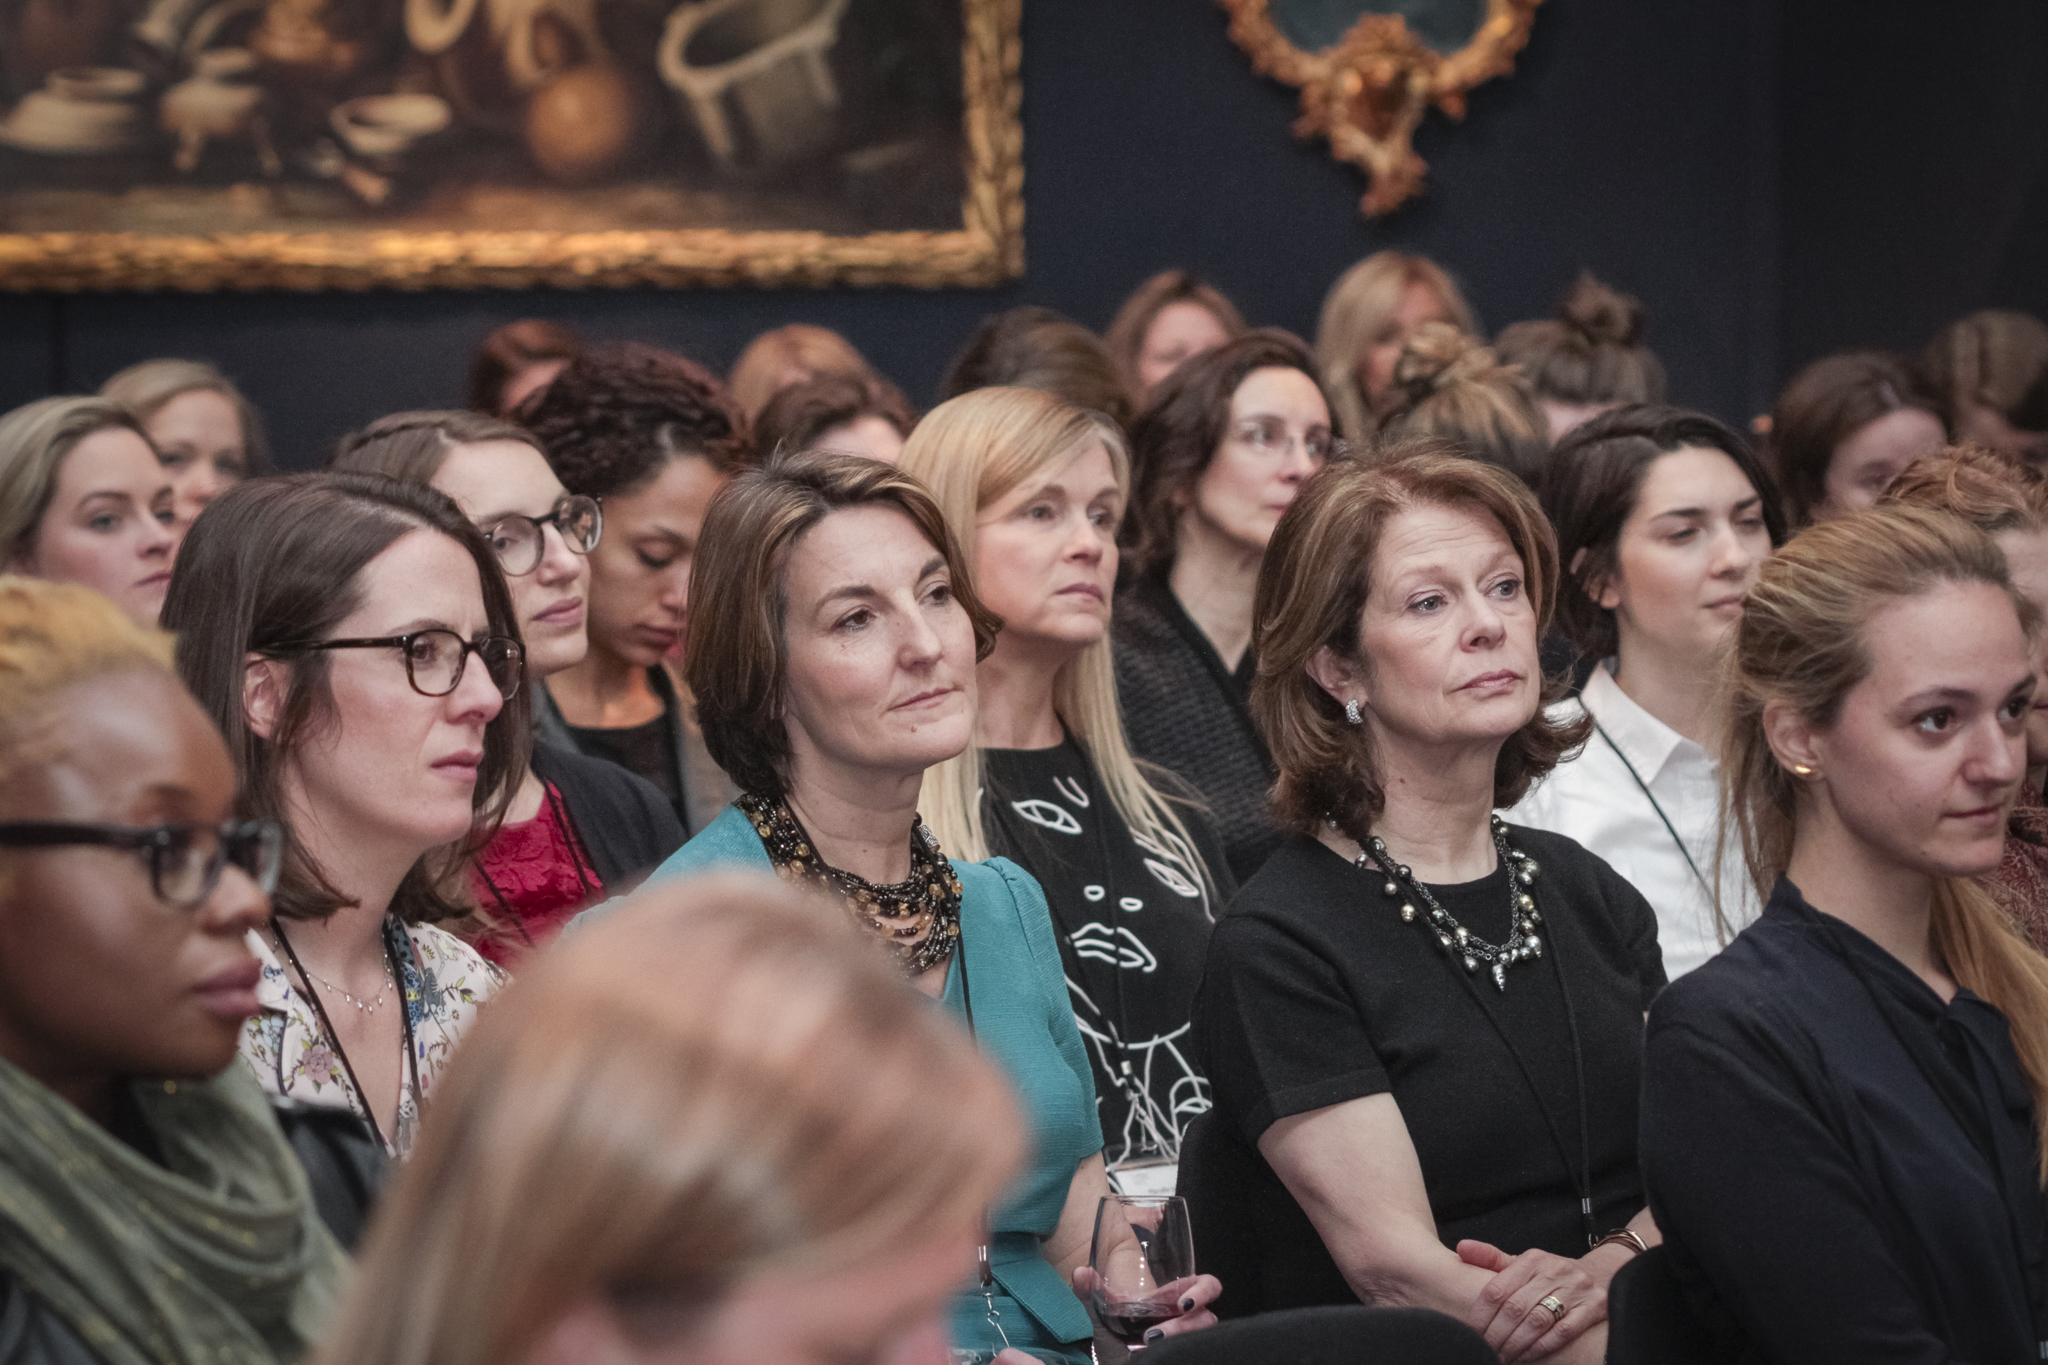 AWITA - The Art of Mentoring - at Christie's, Mayfair - London